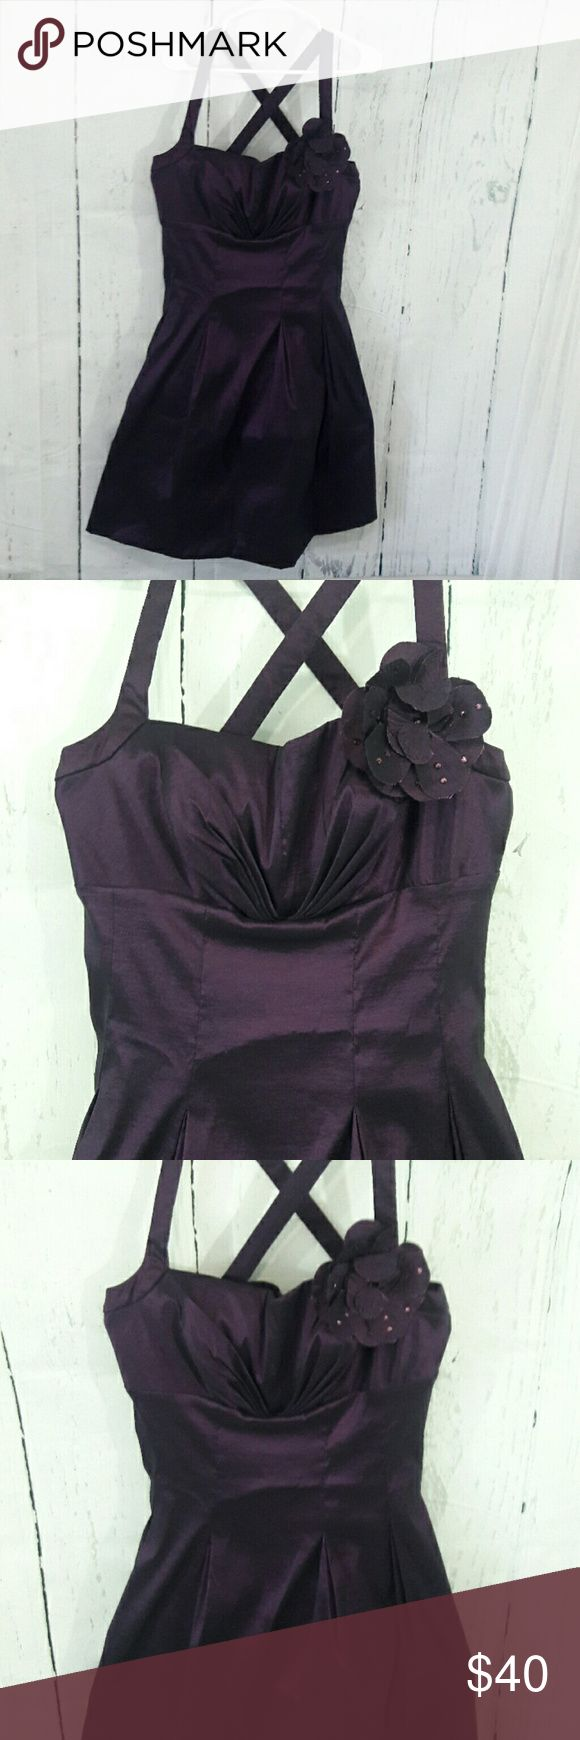 Jessica Howard Nwt Dress Pin up Rockabilly Tagged are ripped • 14 • Deep Plum • GORG!!! • Lined with petticoat Jessica Howard Dresses